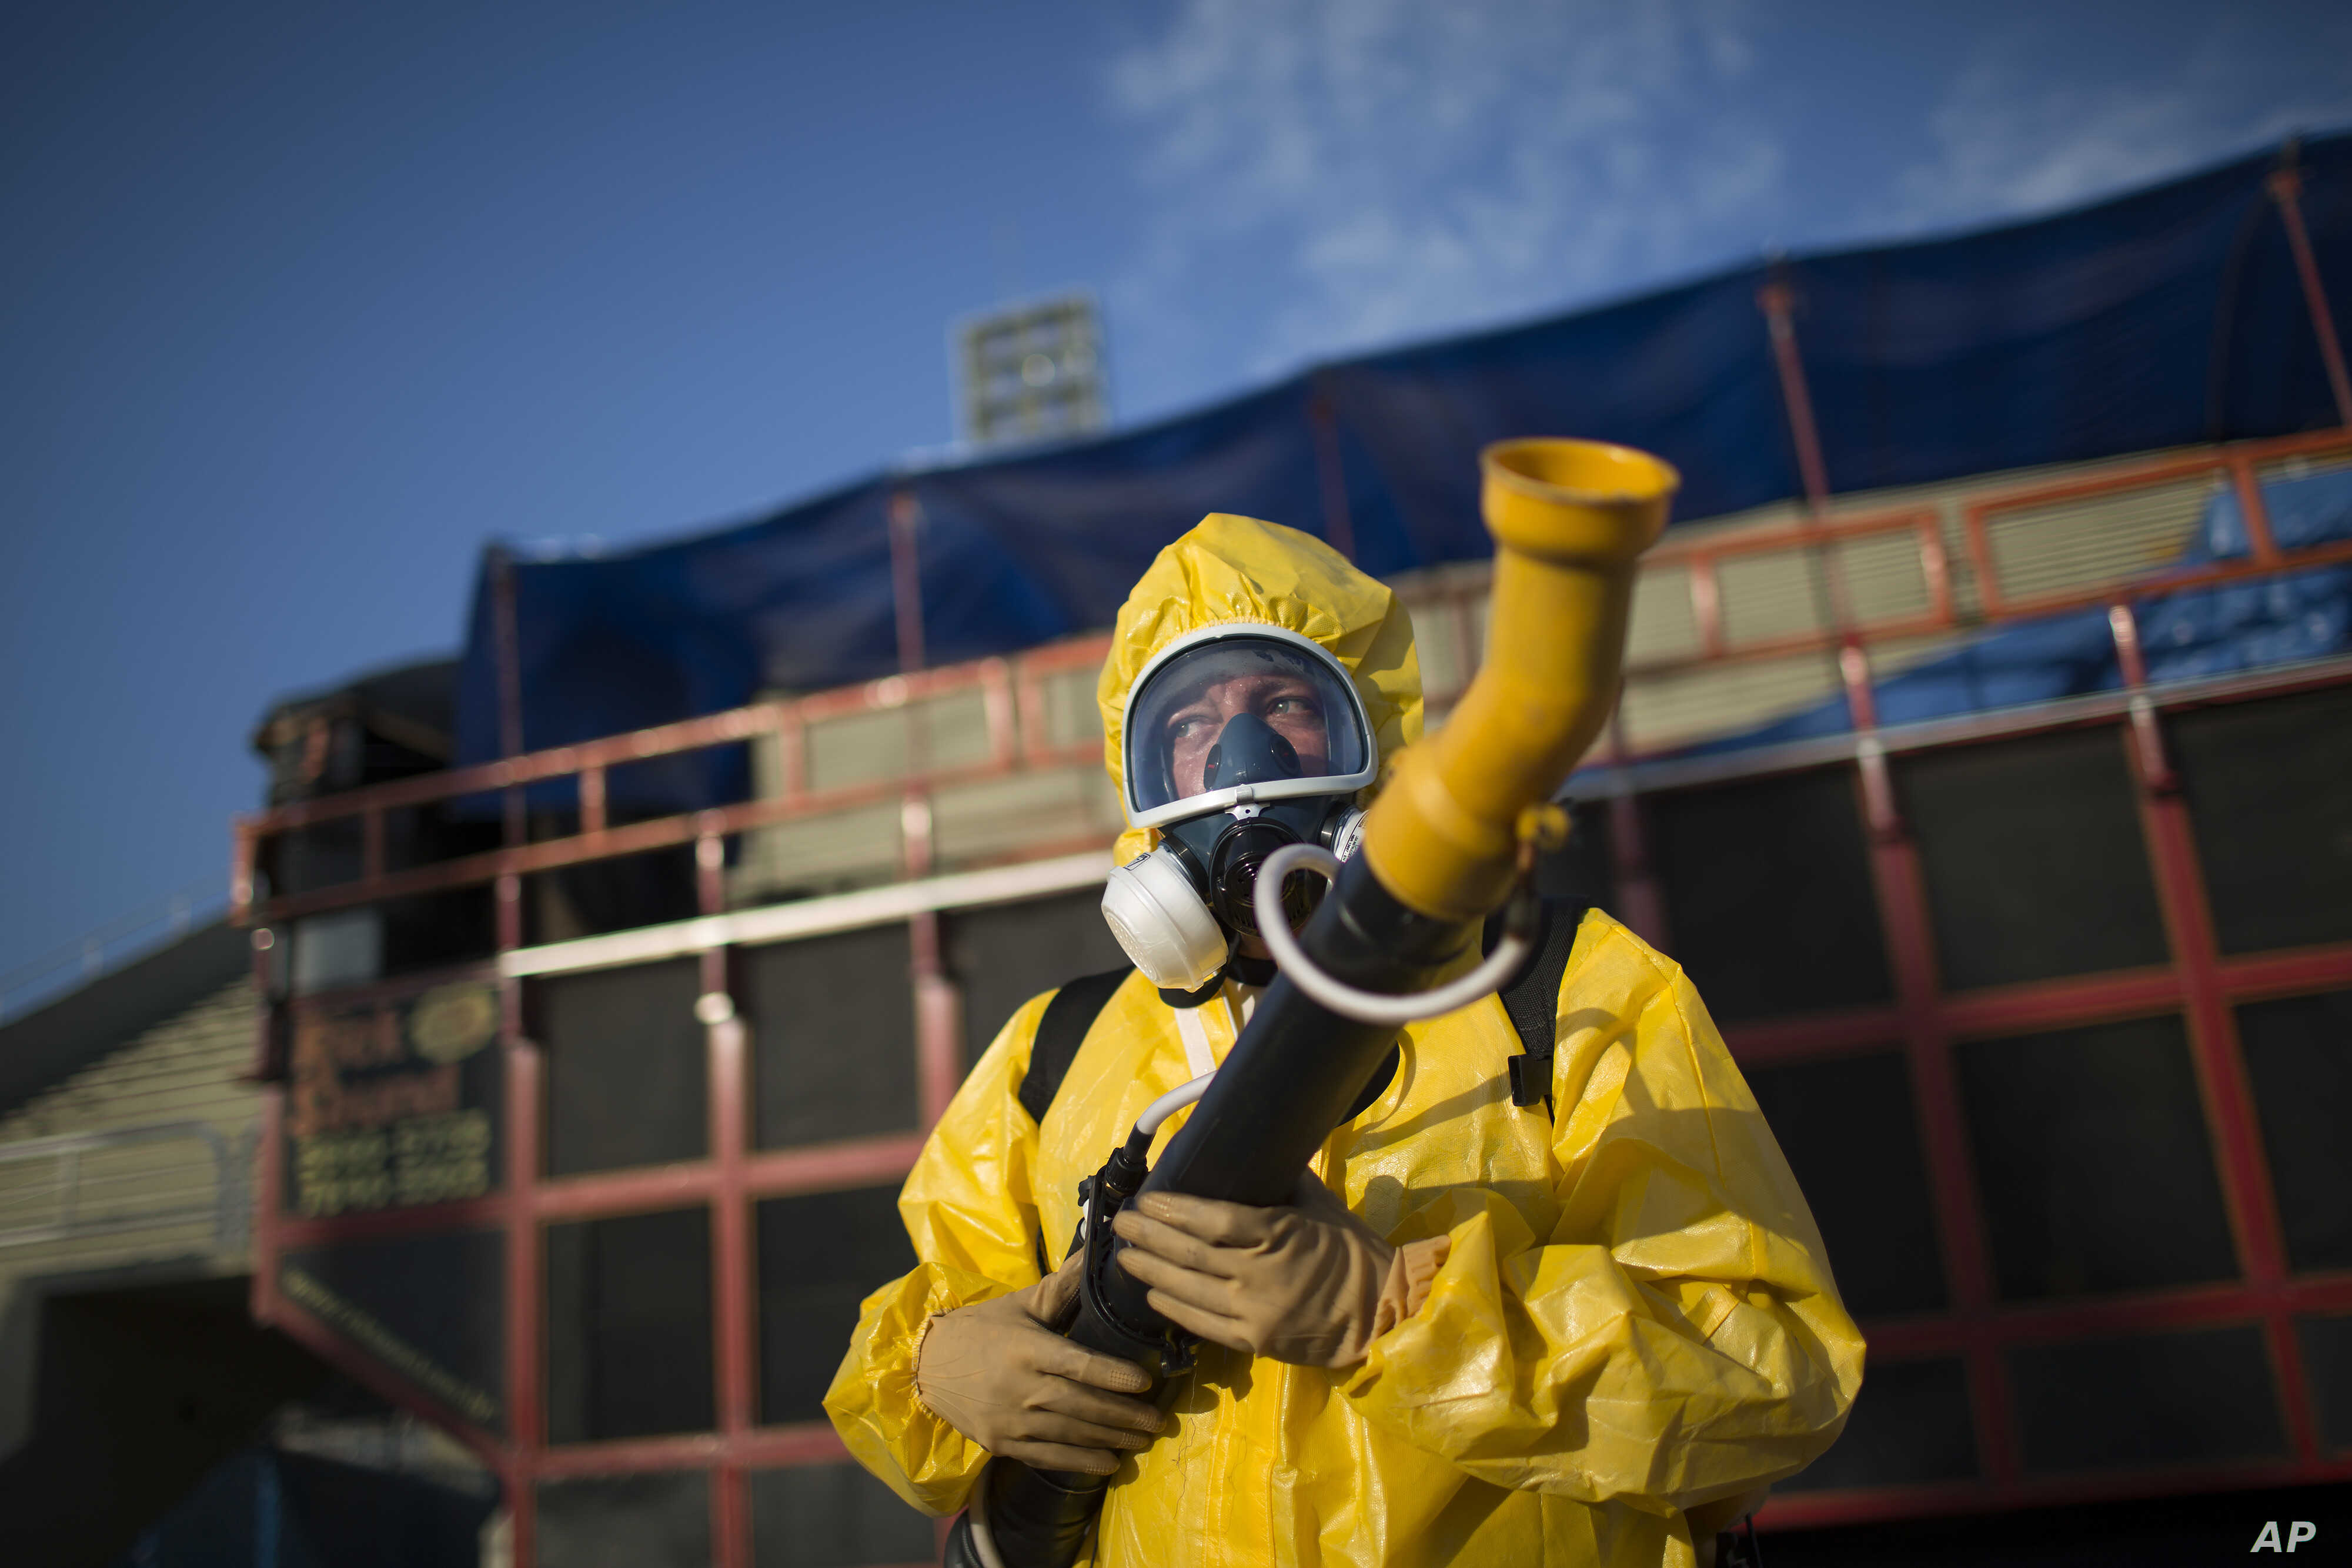 A health worker stands in the Sambadrome as he sprays insecticide to combat the Aedes aegypti mosquitoes that transmit the Zika virus, in Rio de Janeiro, Brazil, Jan. 26, 2016.